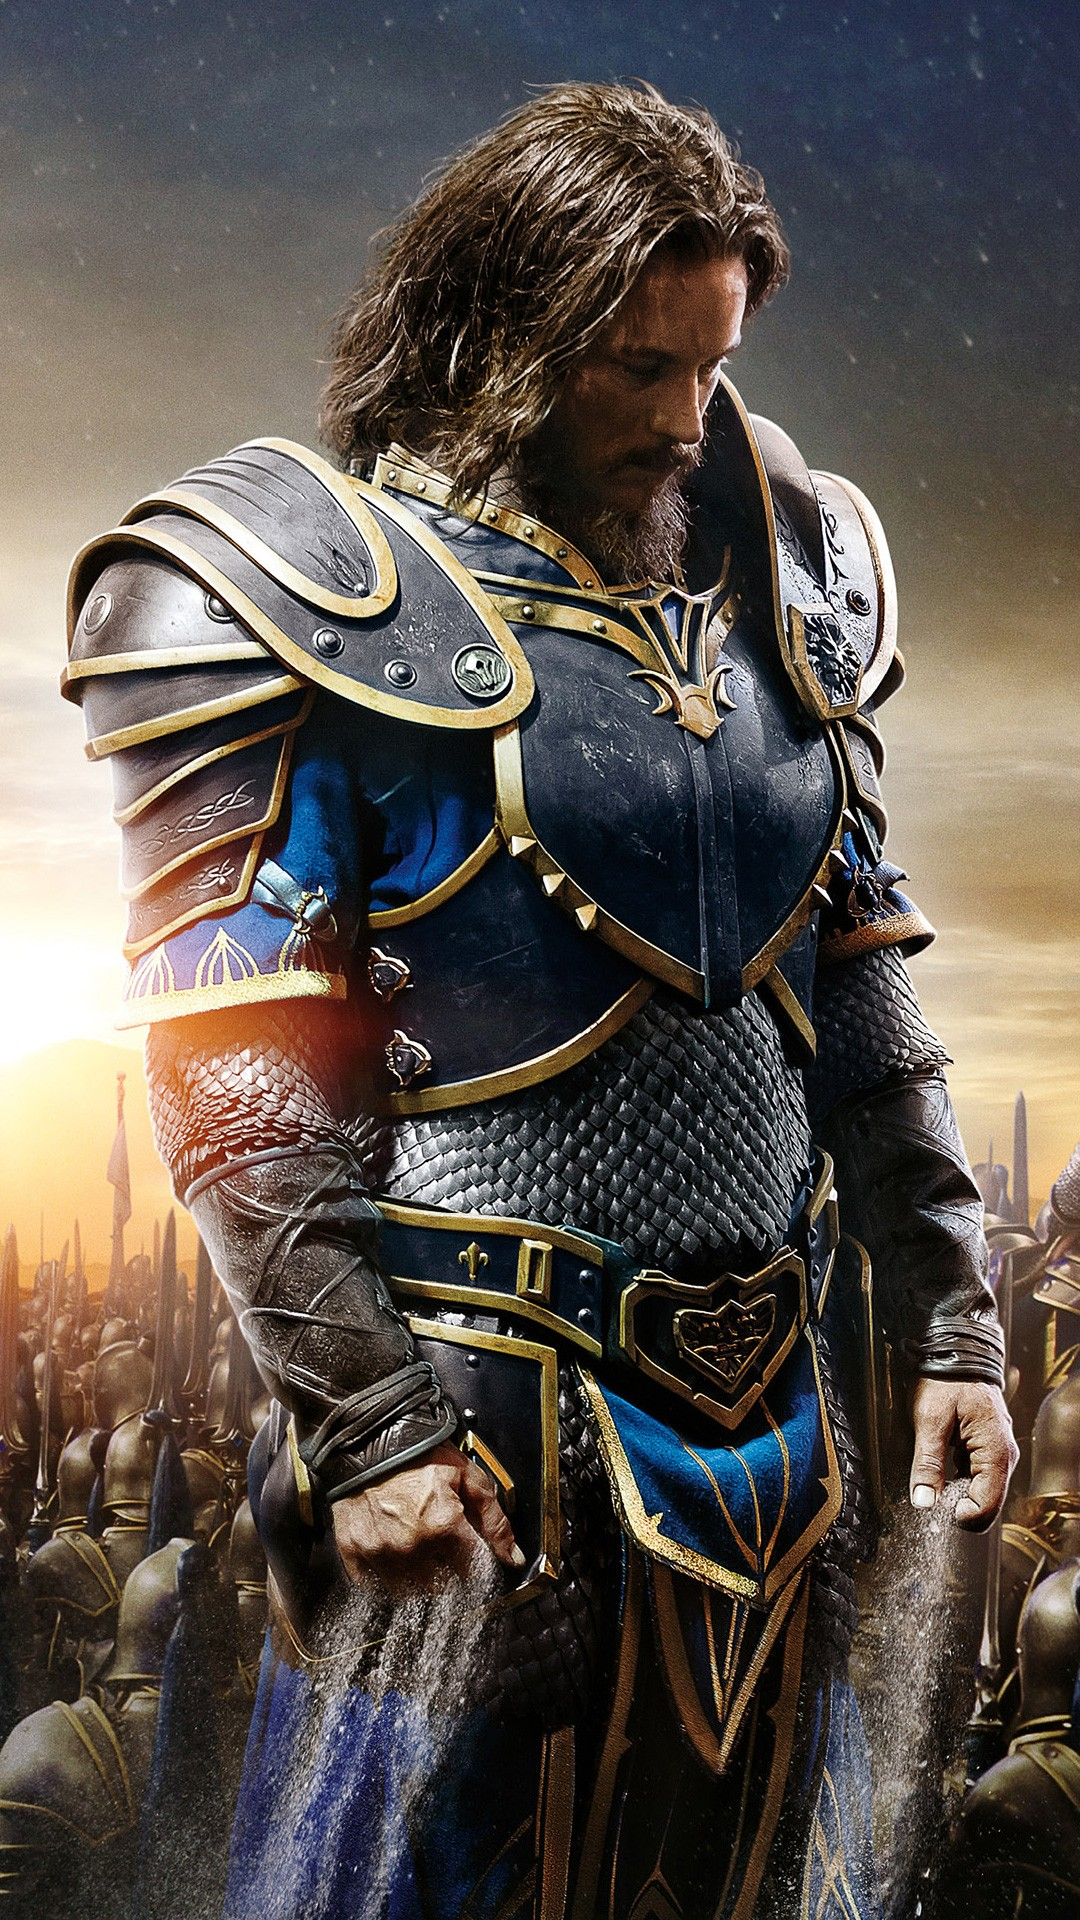 Free Download Wallpaper 3d Windows 7 Anduin Lothar Warcraft Movie Wallpapers Hd Wallpapers